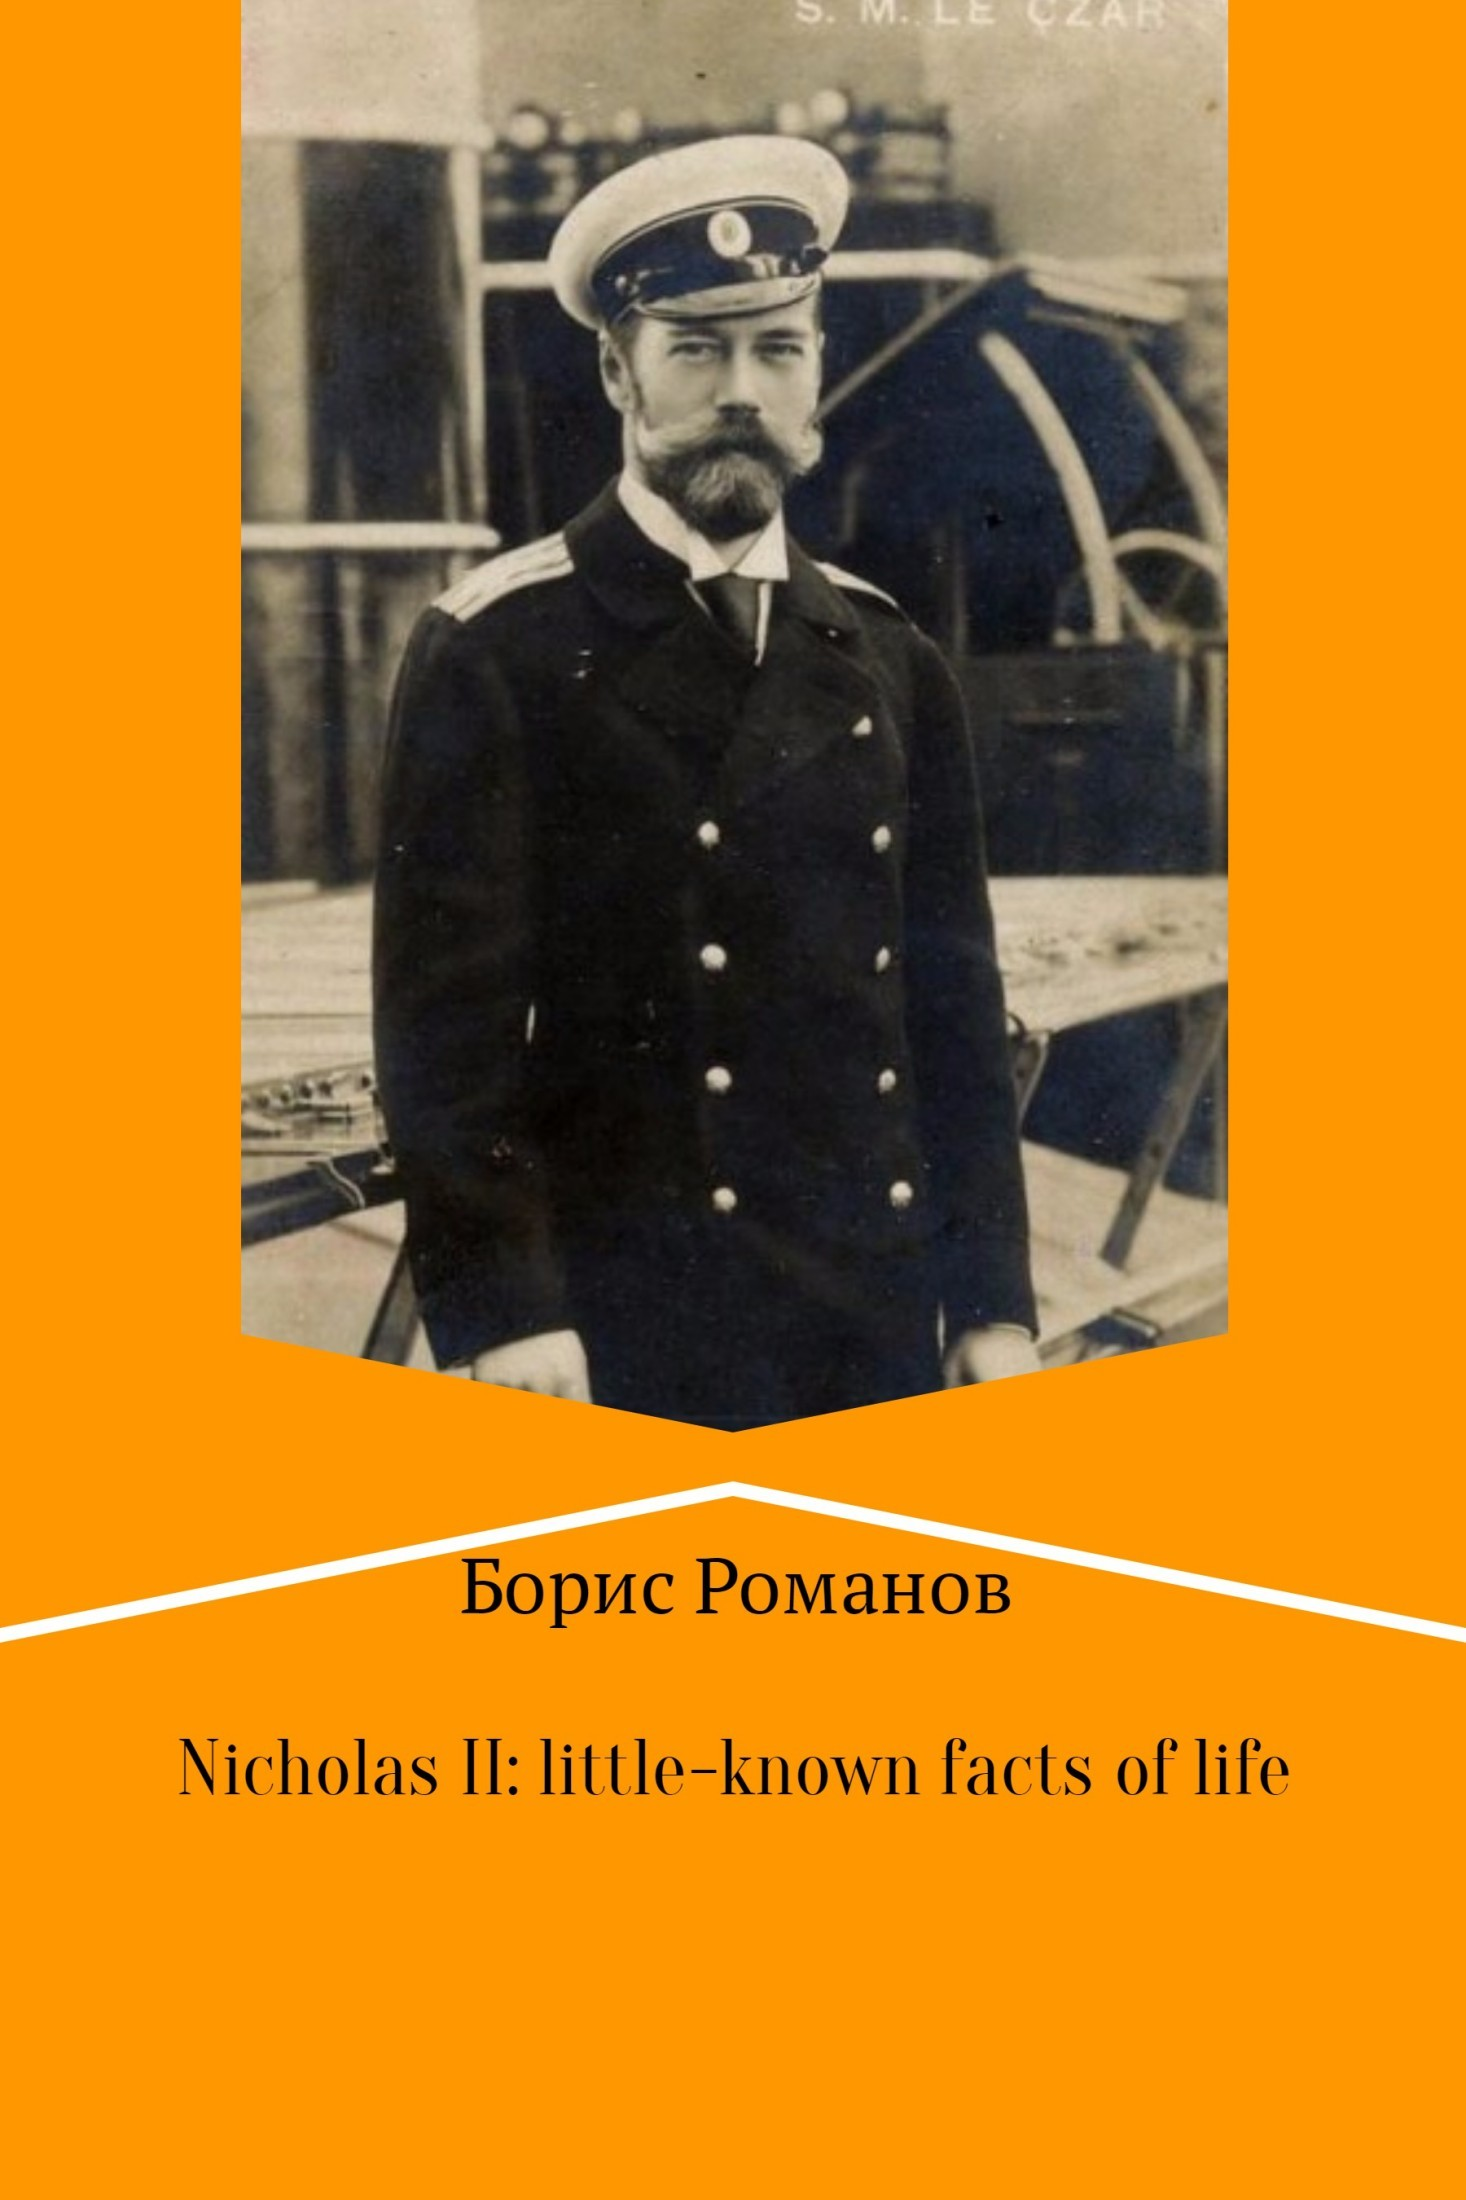 Nicholas II of Russia: little-known facts of life – Борис Романов